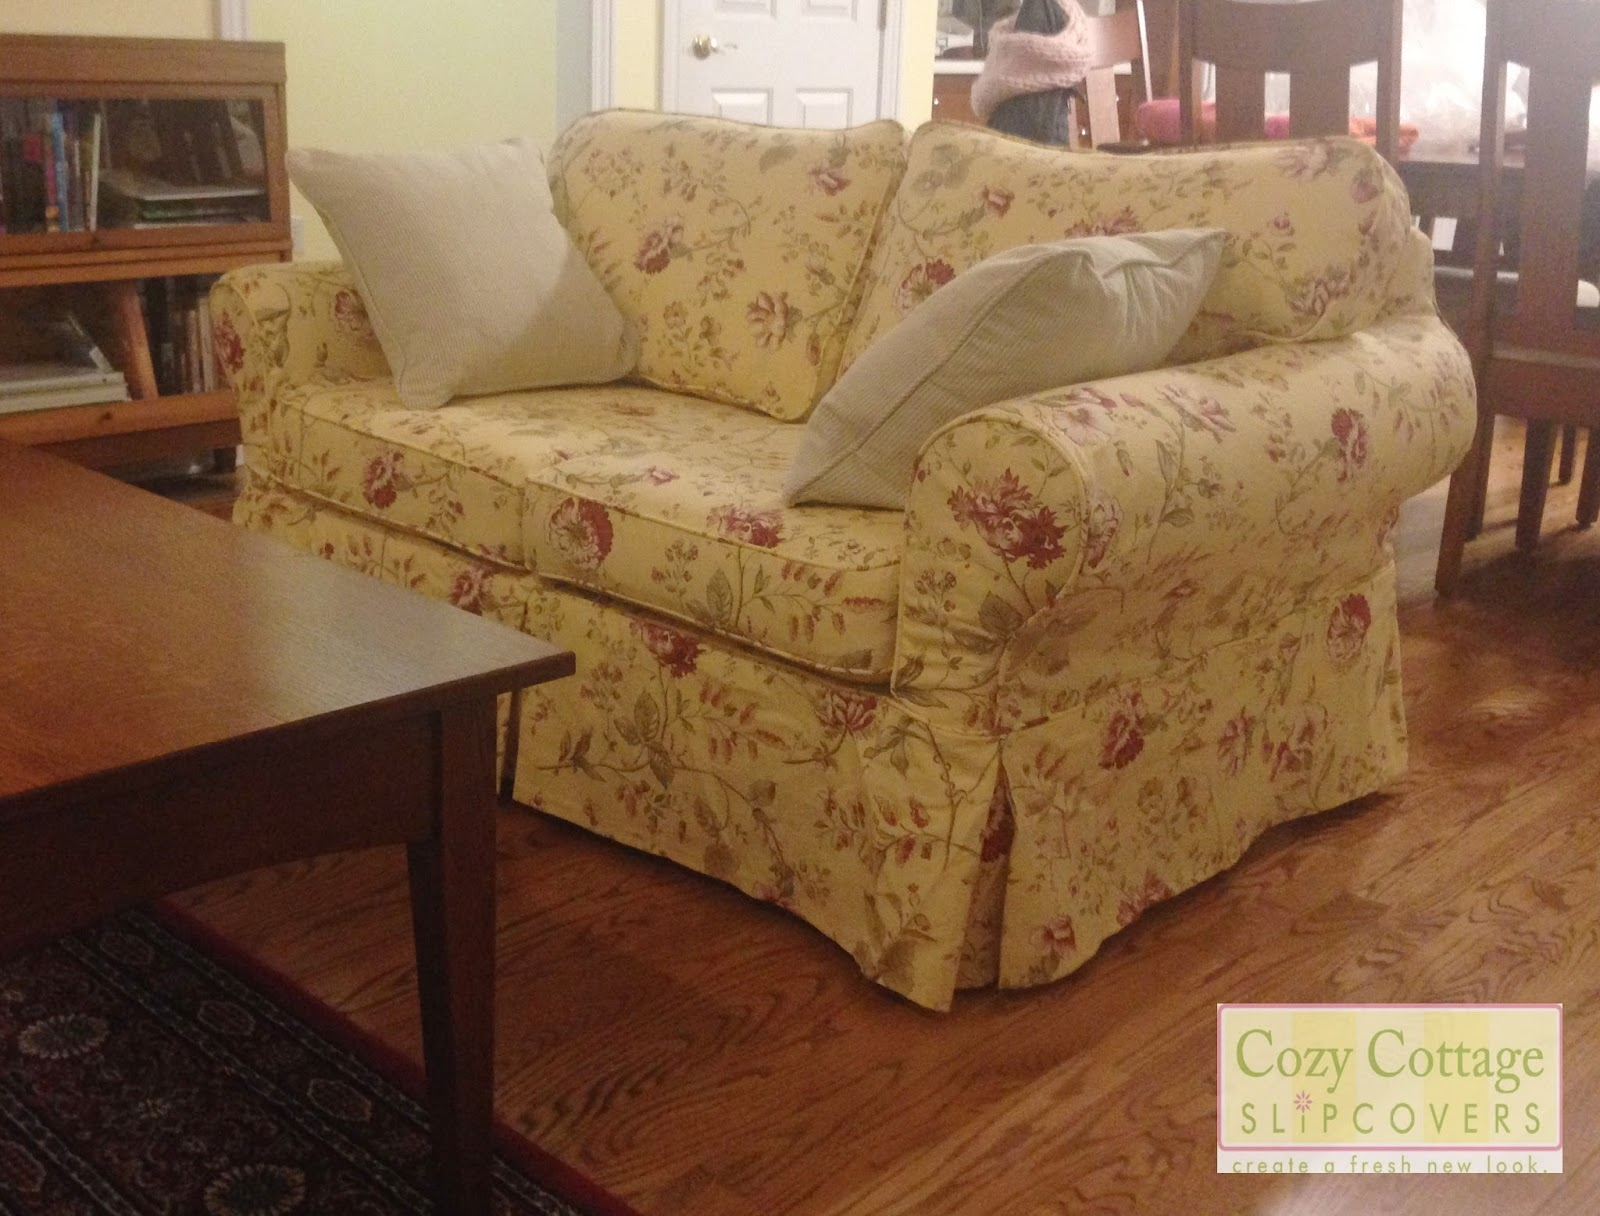 Cozy Cottage Slipcovers In Country Cottage Sofas And Chairs (Image 5 of 15)